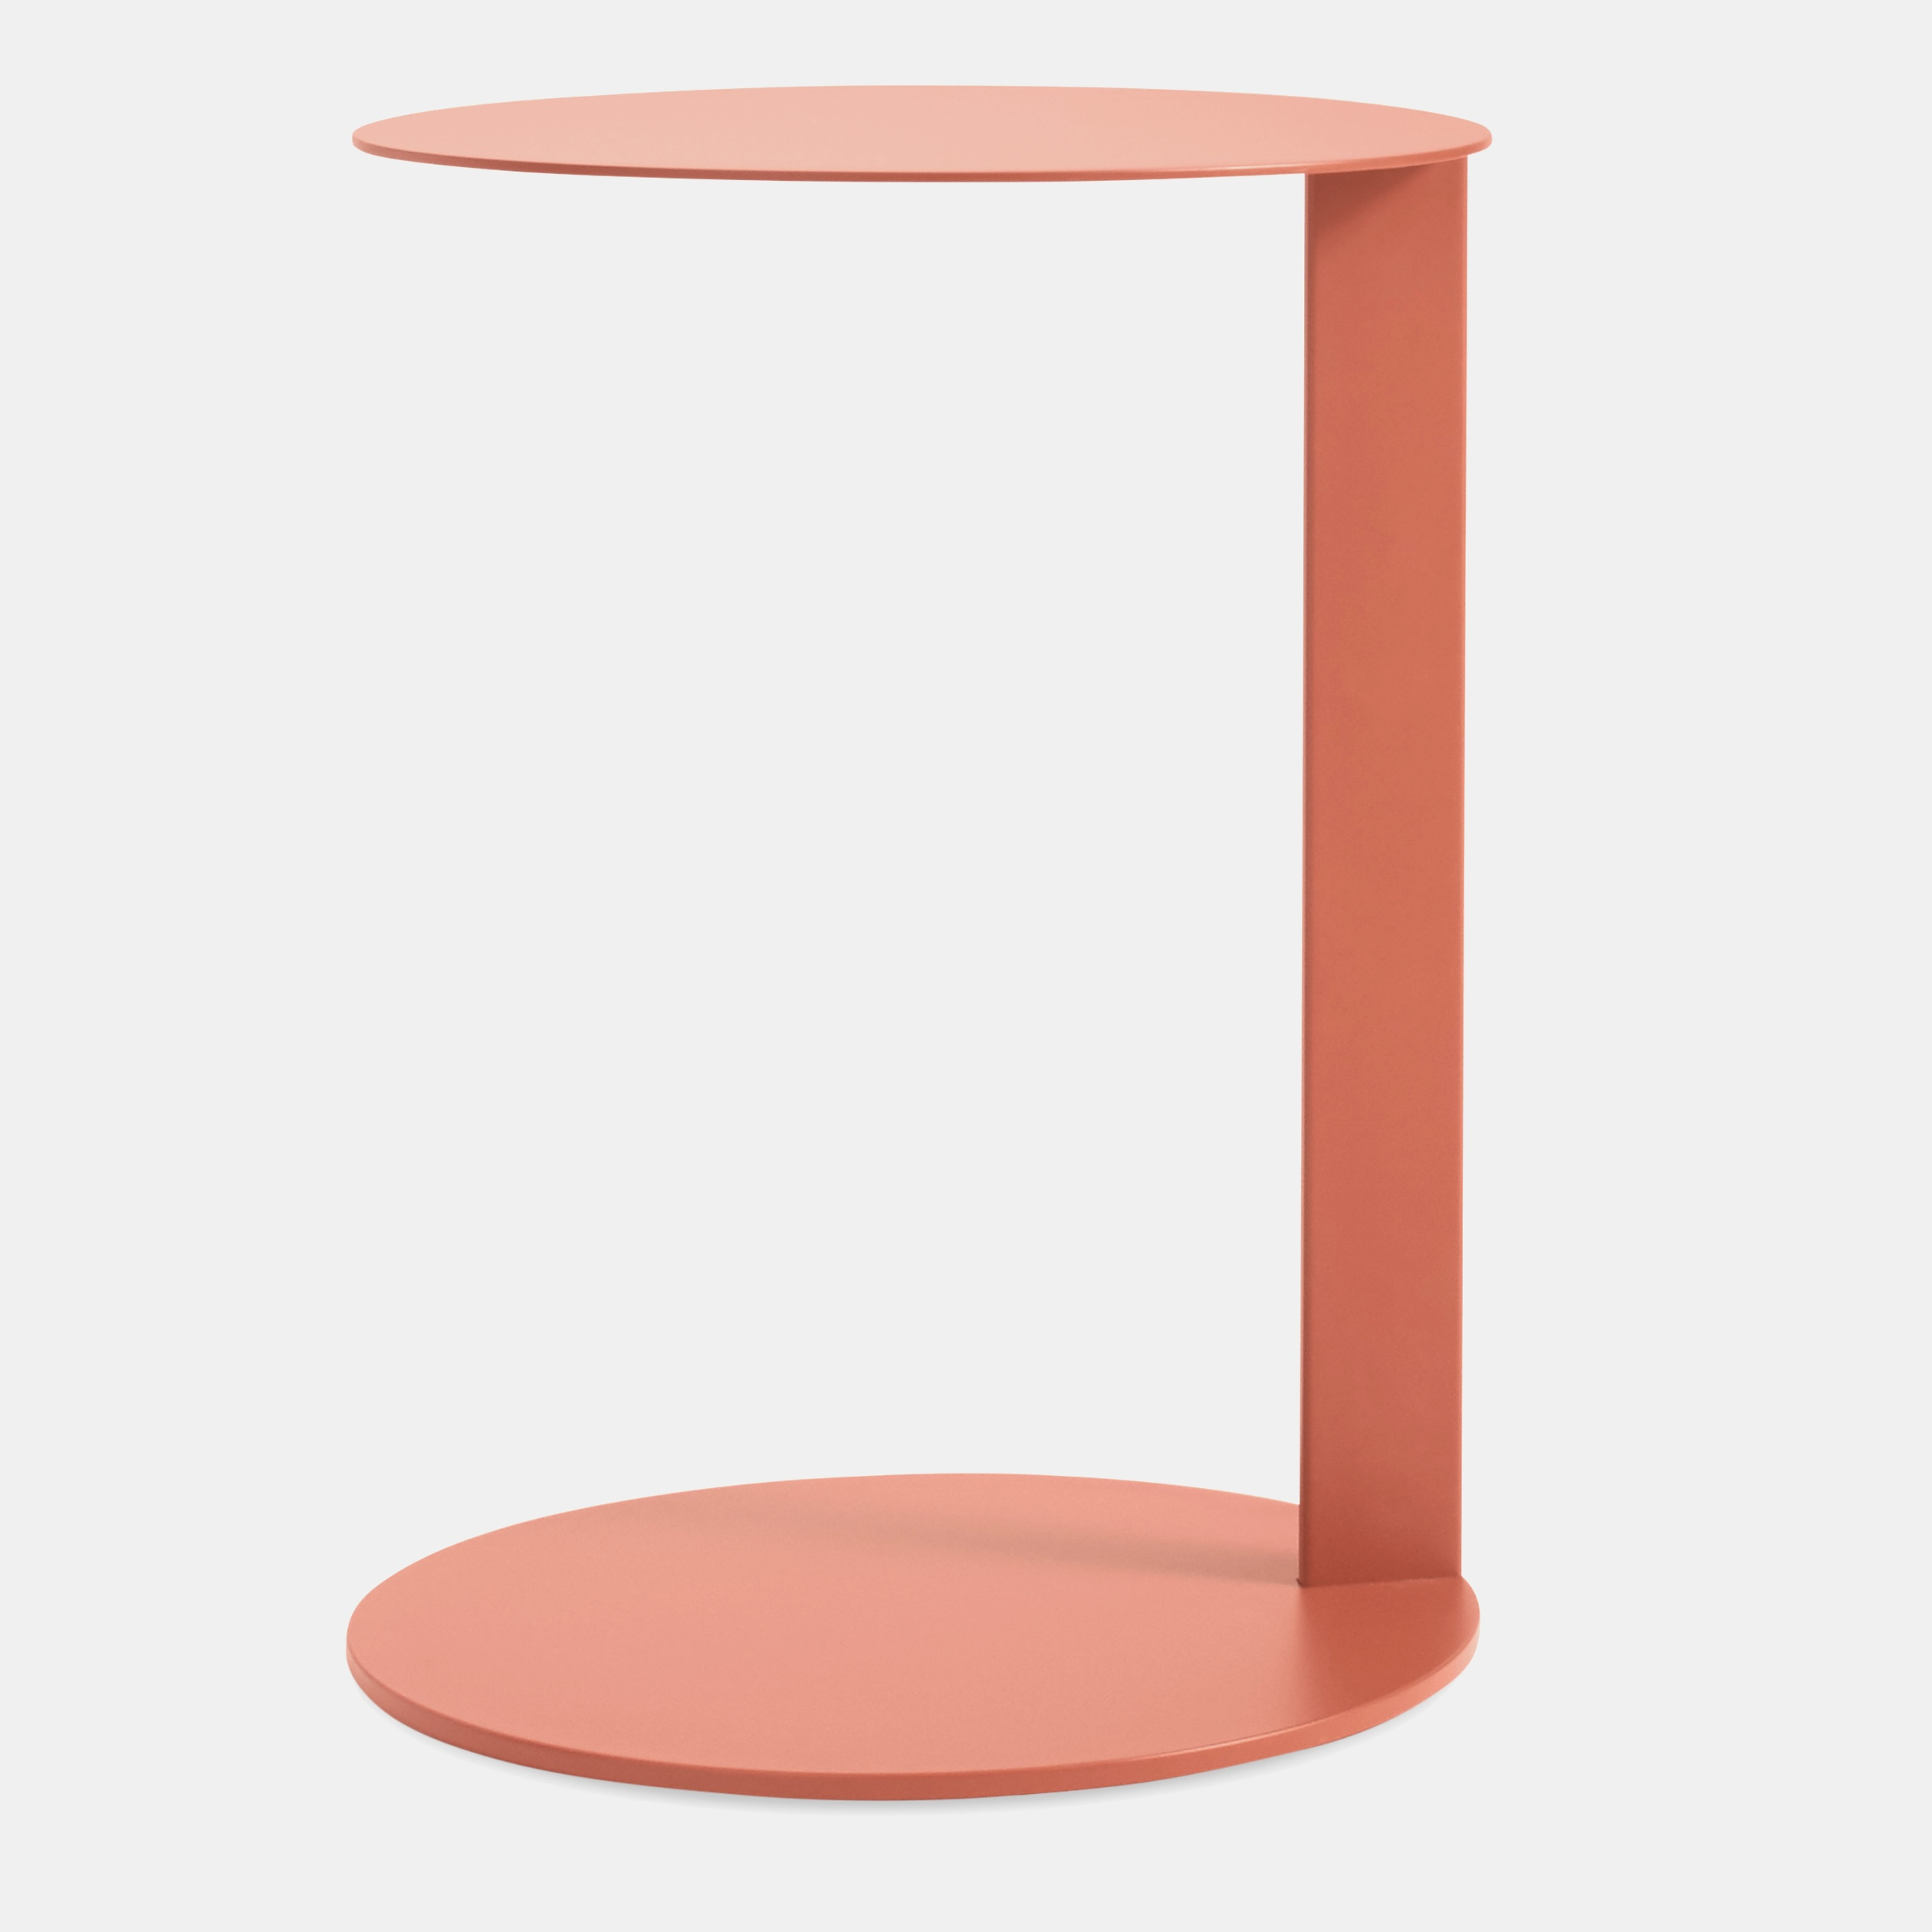 c side table | Note Side Table - C Shaped Side Table | Blu Dot | c side table